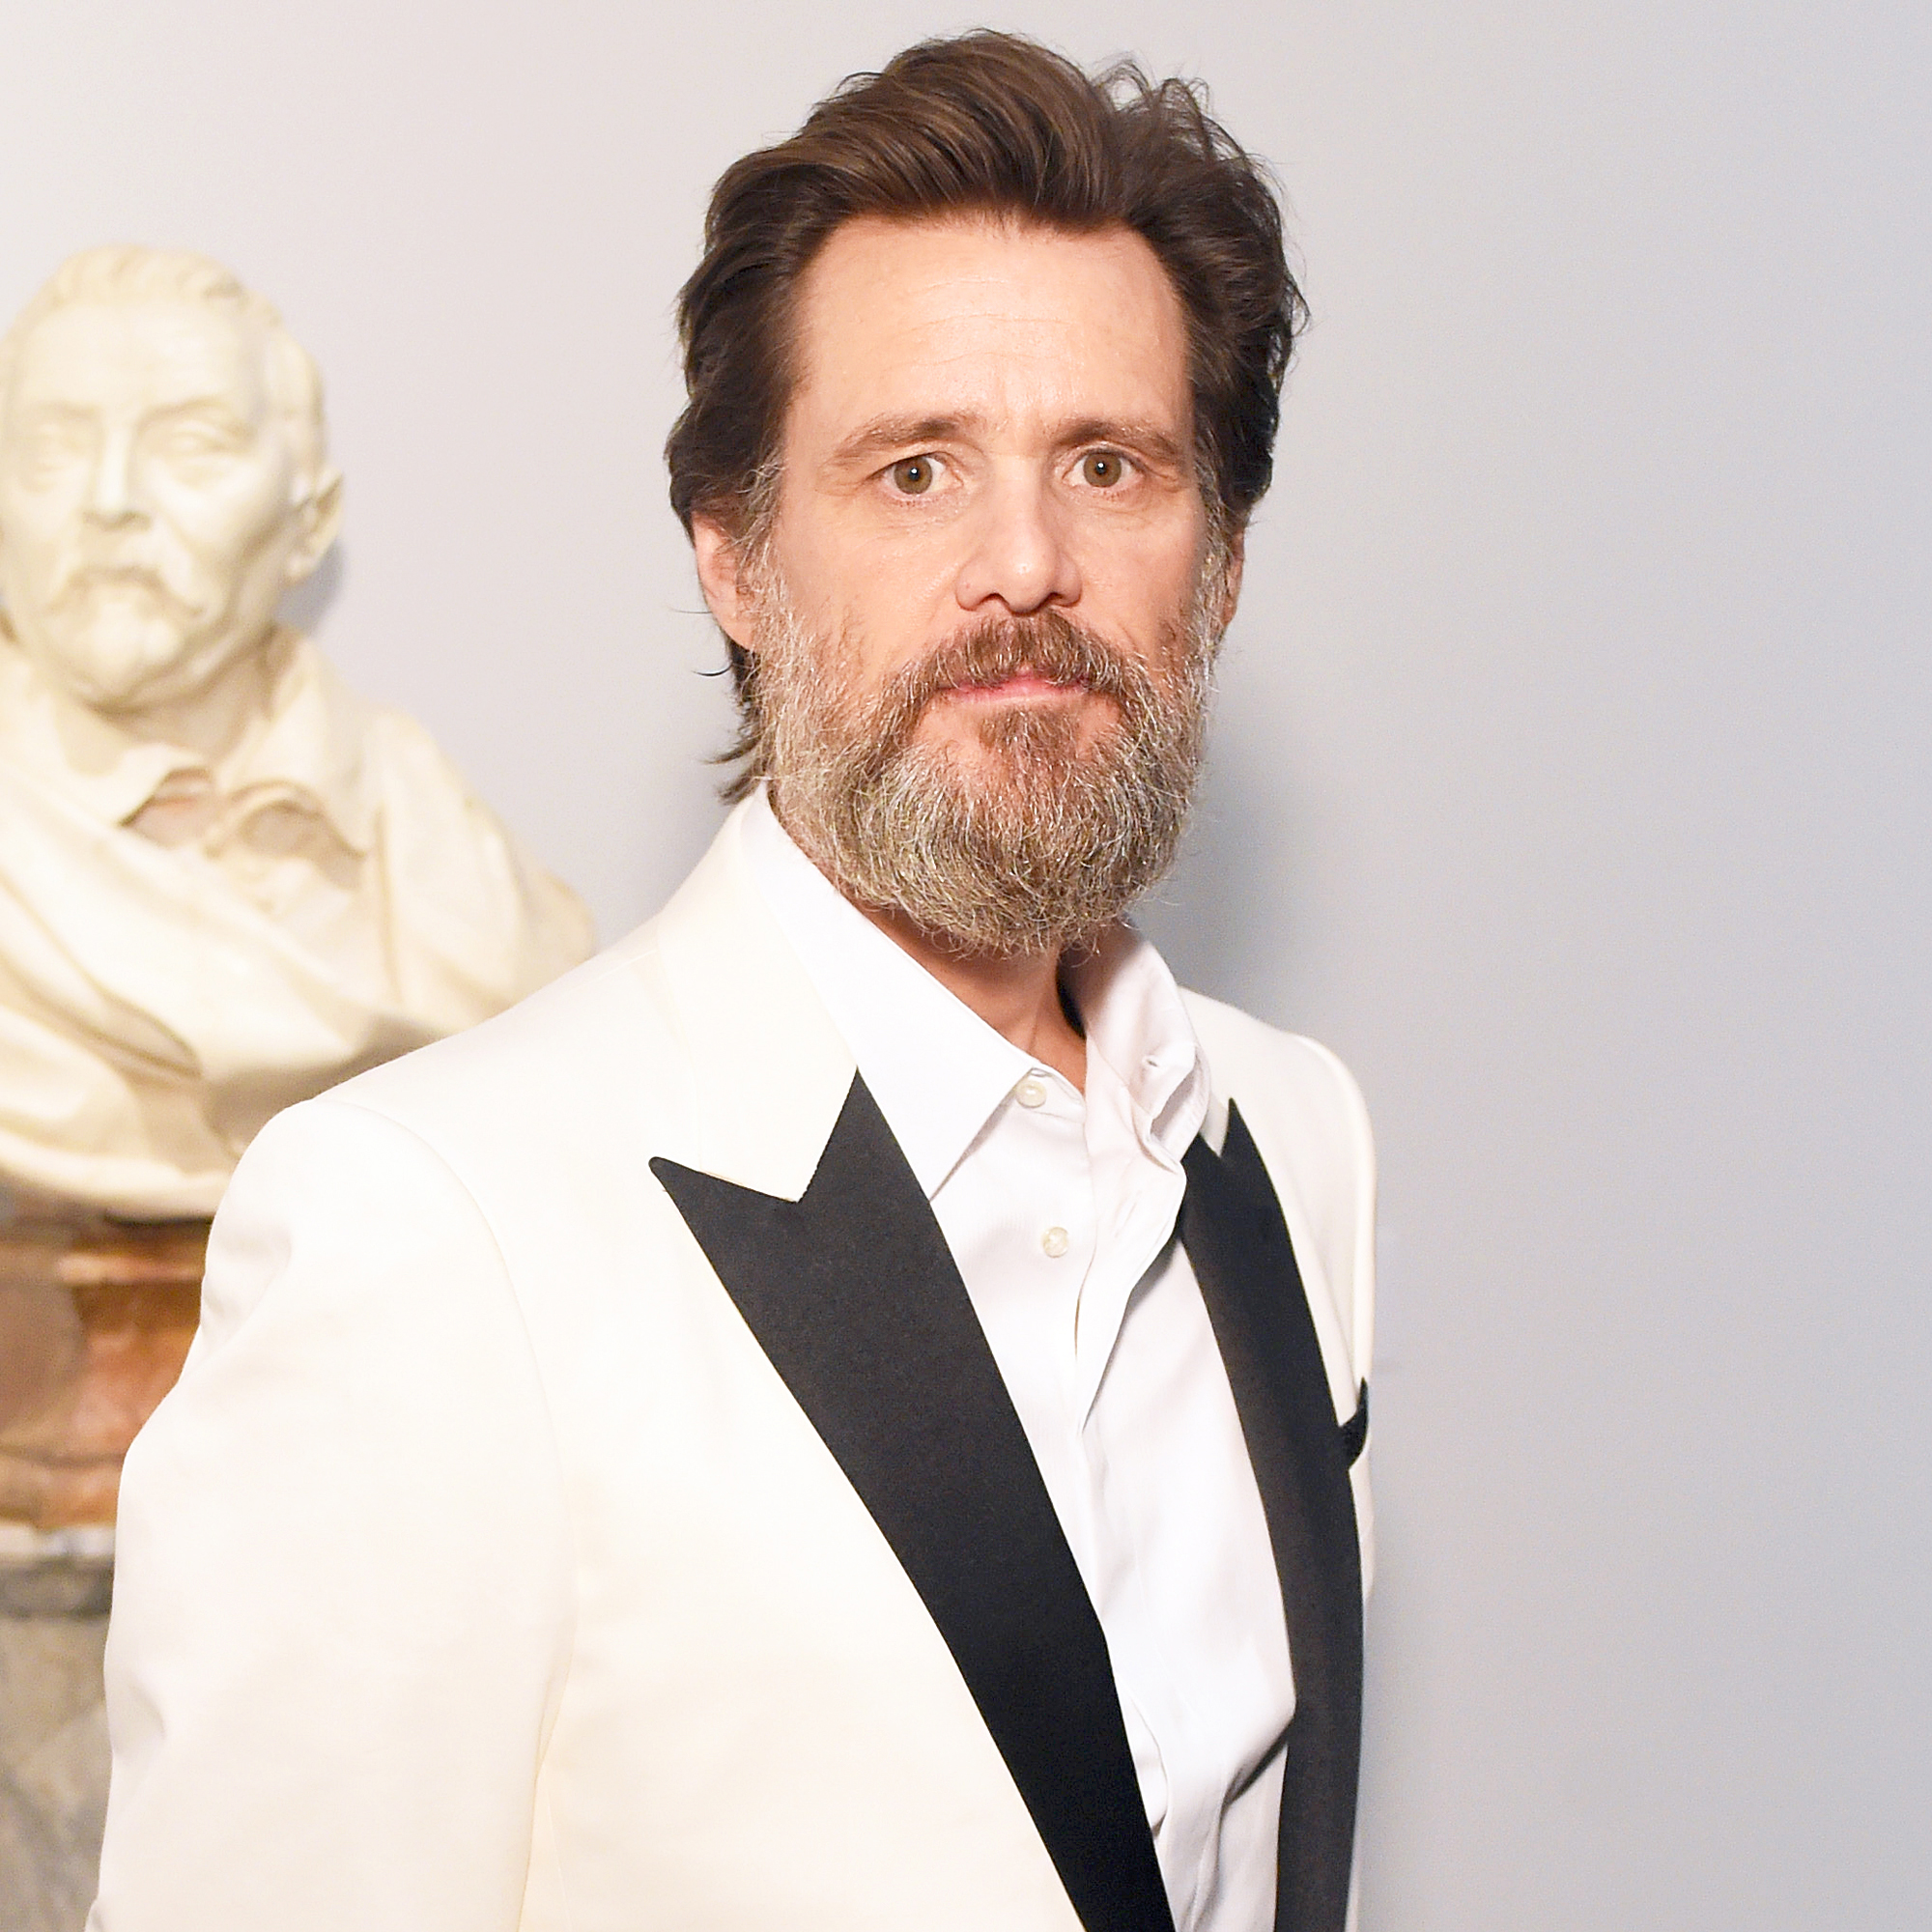 Jim Carrey attends LACMA's 50th Anniversary Gala sponsored by Christie's at LACMA on April 18, 2015 in Los Angeles, California.